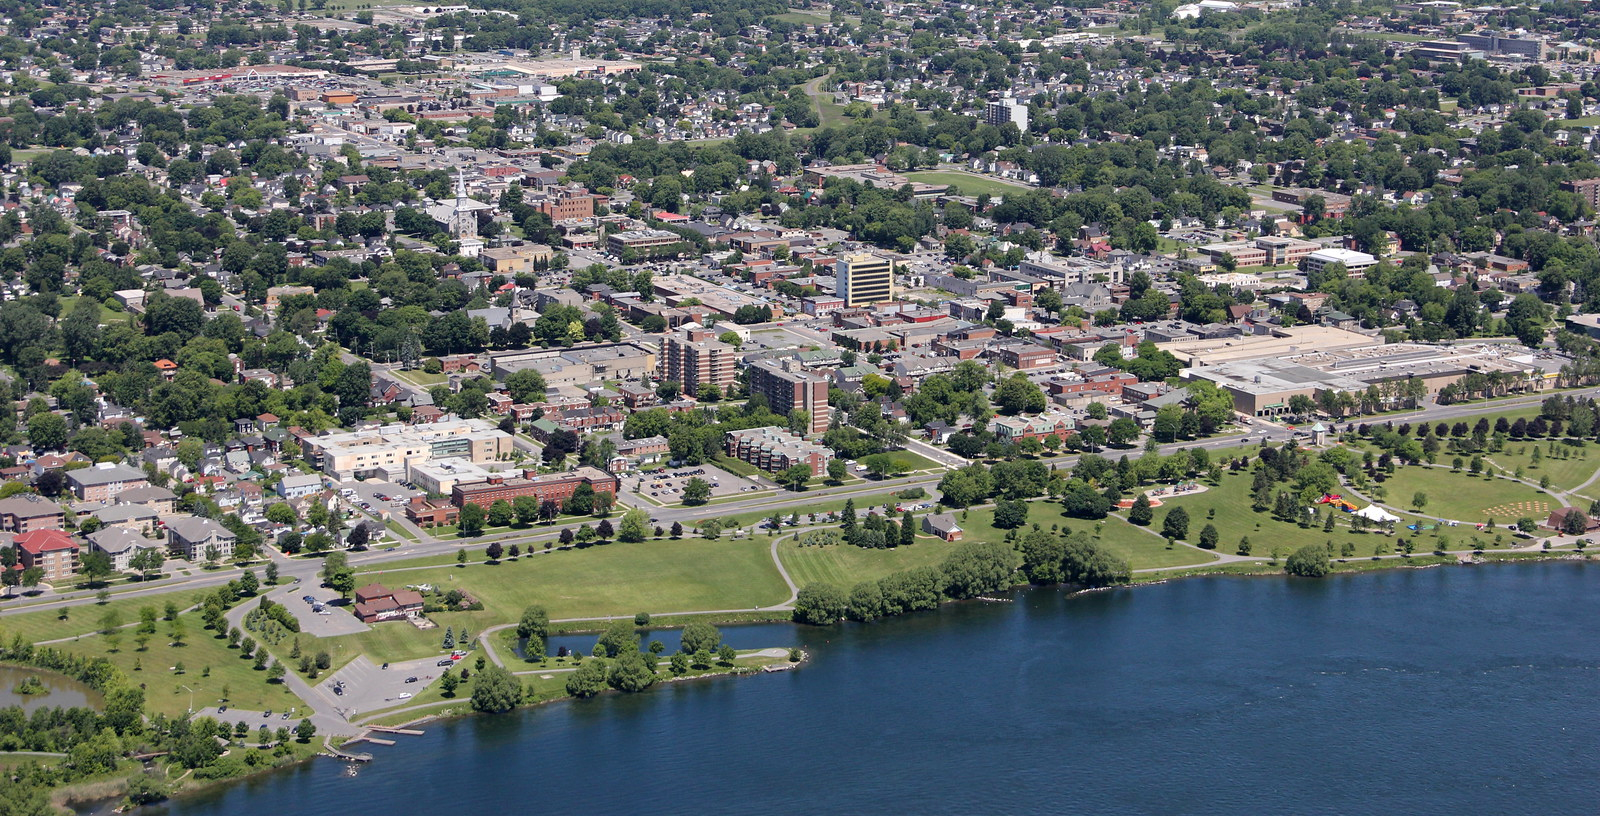 Aerial view of City from above Saint Lawrence River